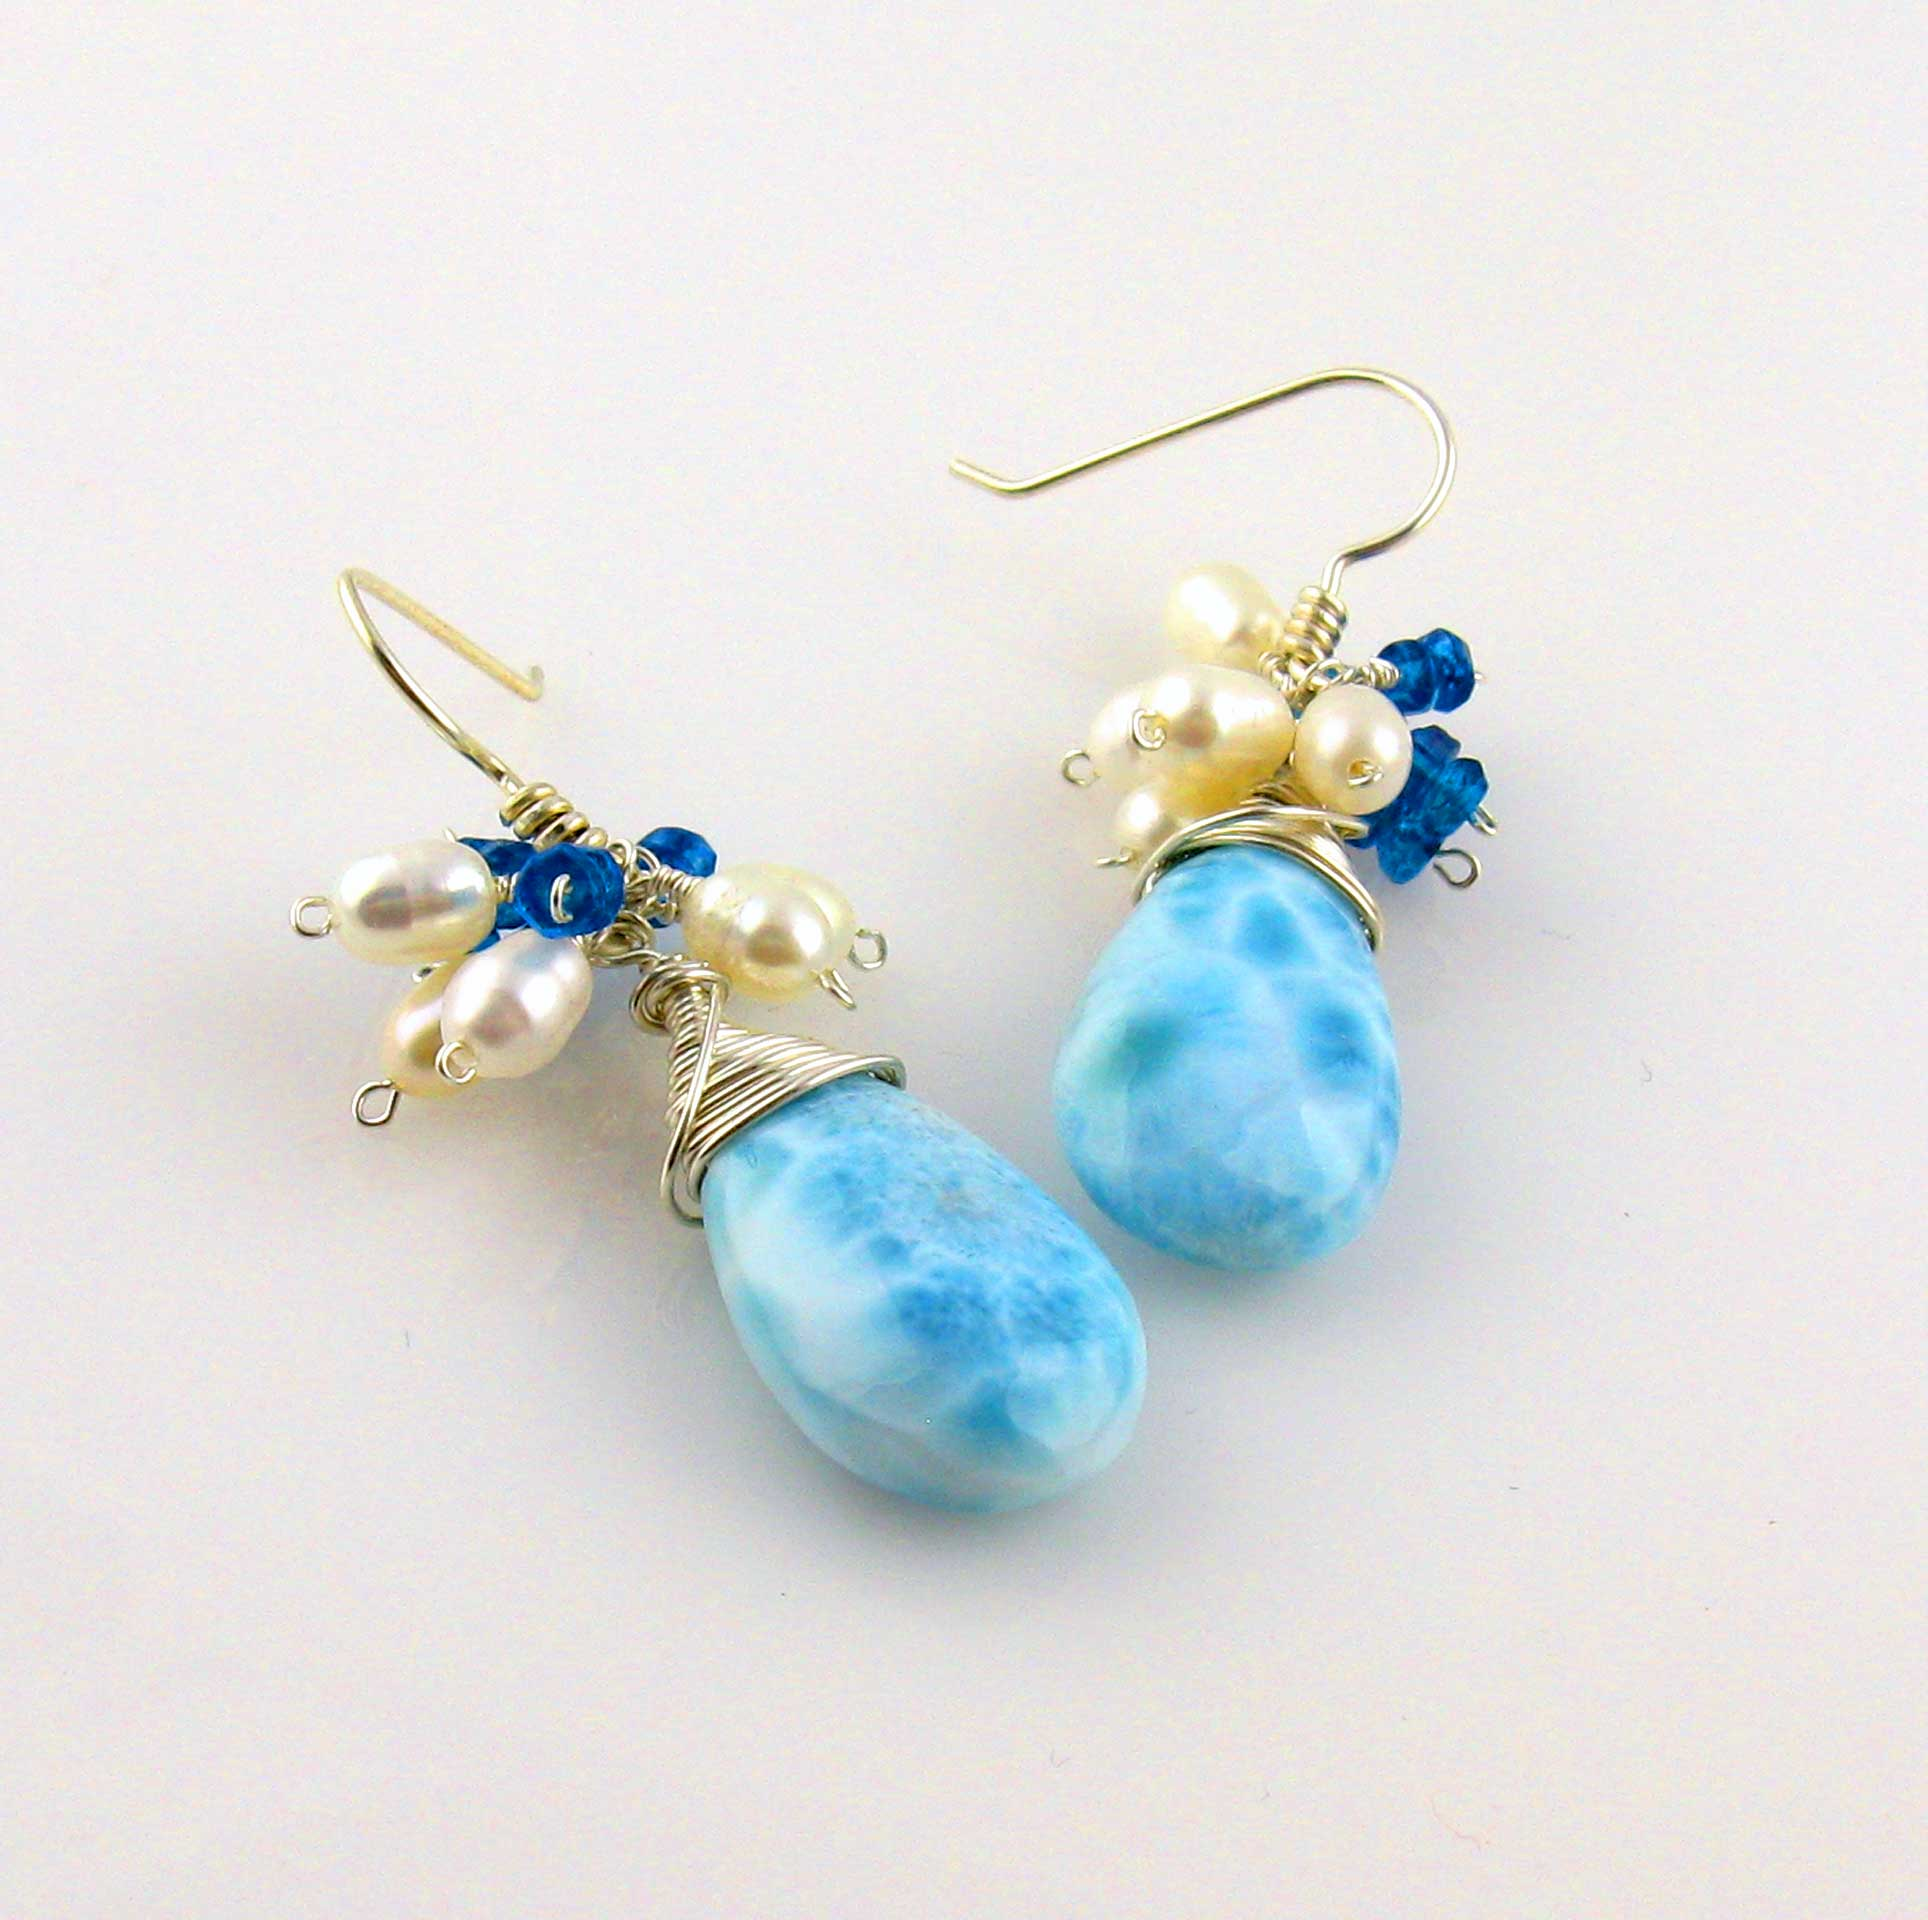 gold earrings with white gemstone in stud blue topaz